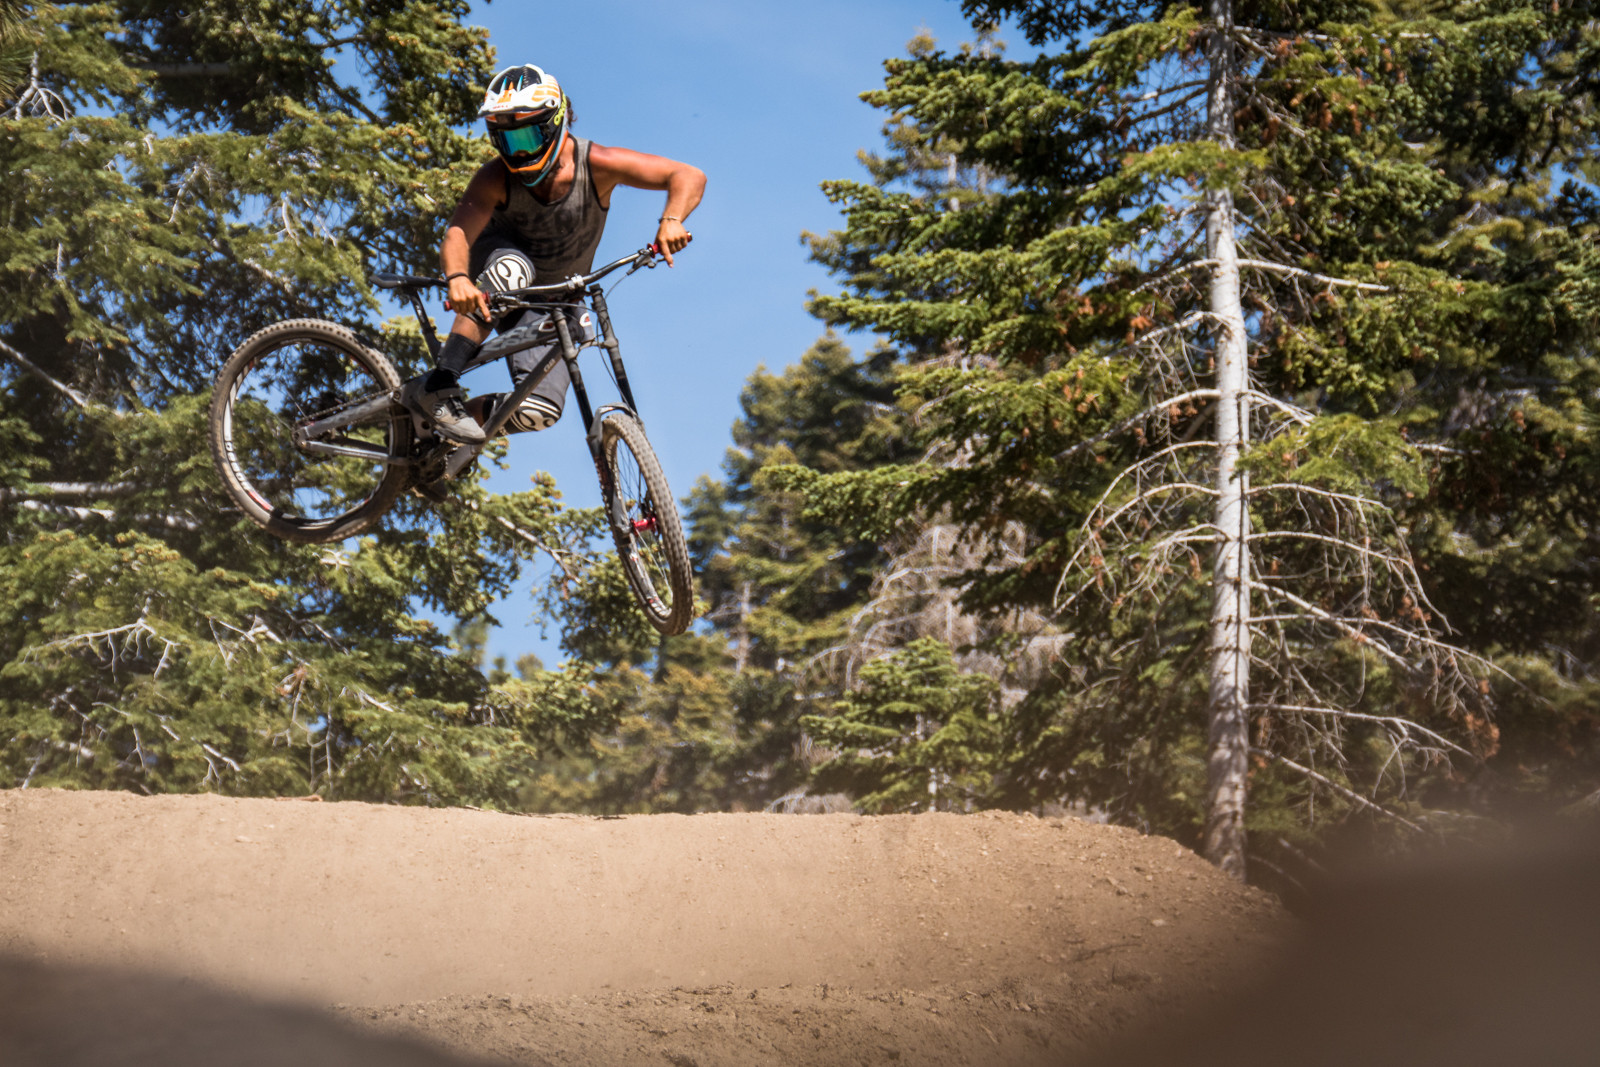 Mikey Haderer - Vital Ditch Day 2016 at Snow Summit Bike Park - Mountain Biking Pictures - Vital MTB